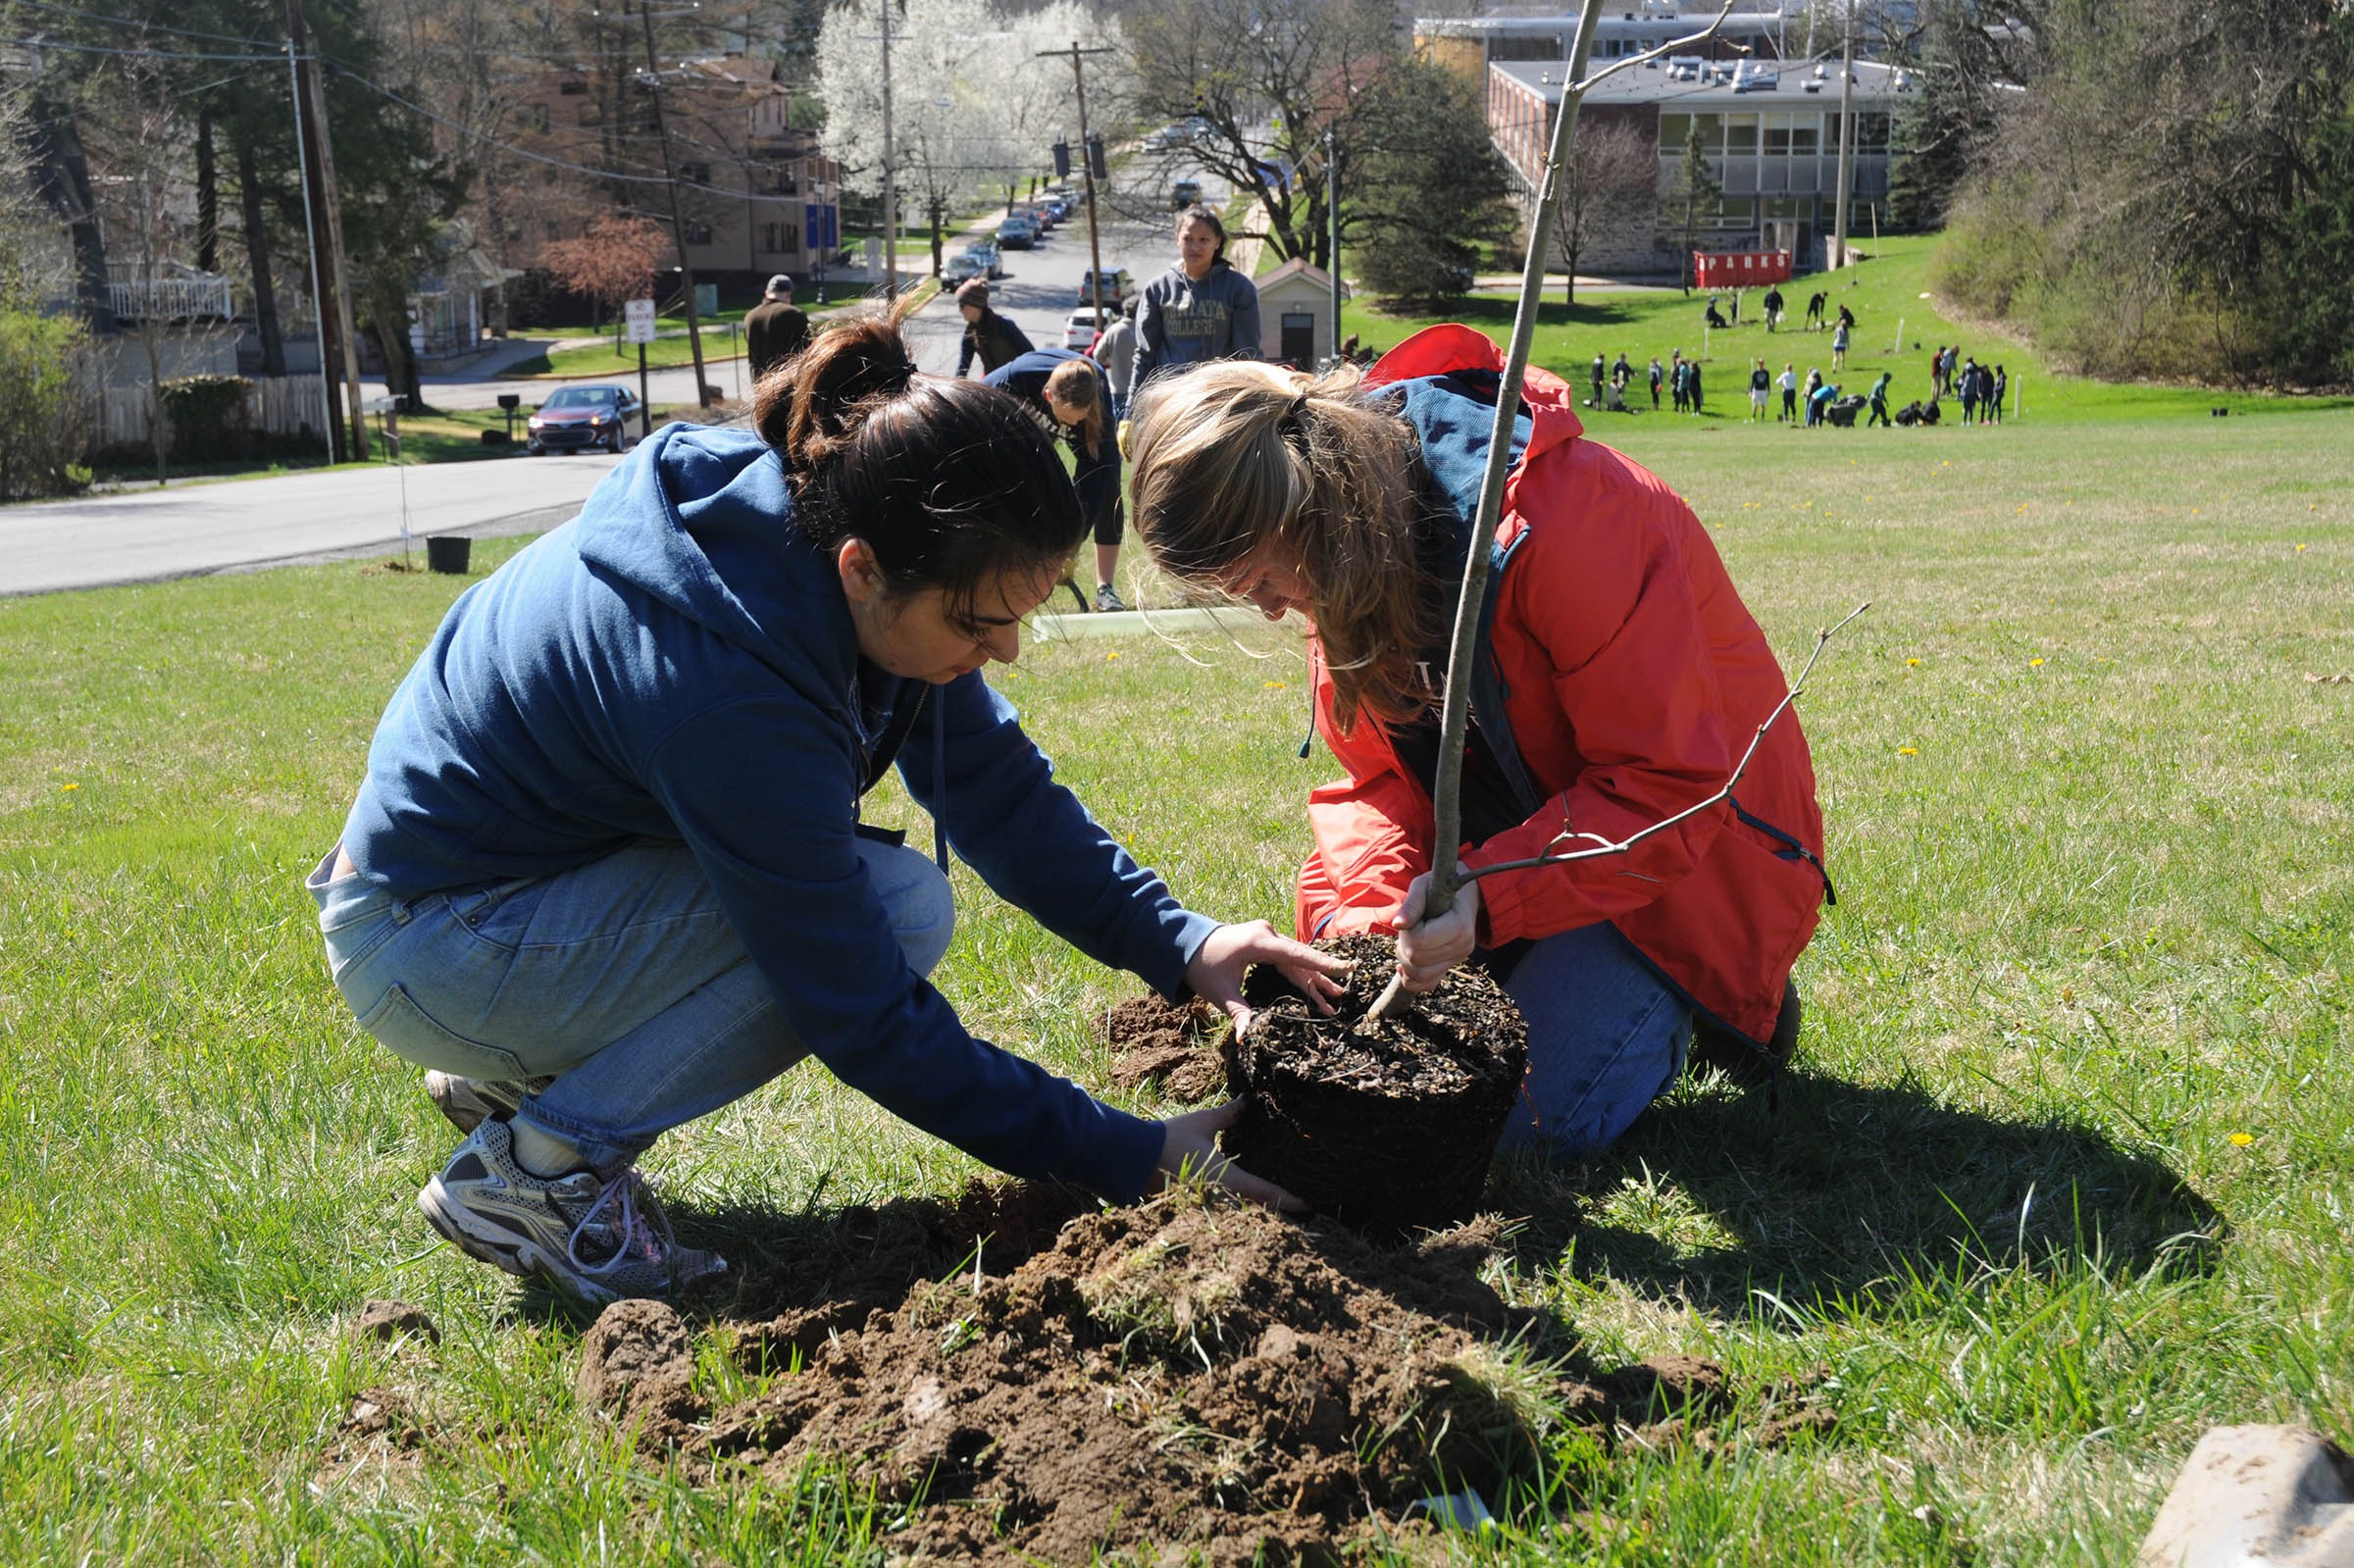 Volunteers plant 250 trees on Earth Day to celebrate the 250th anniversary of Huntingdon.